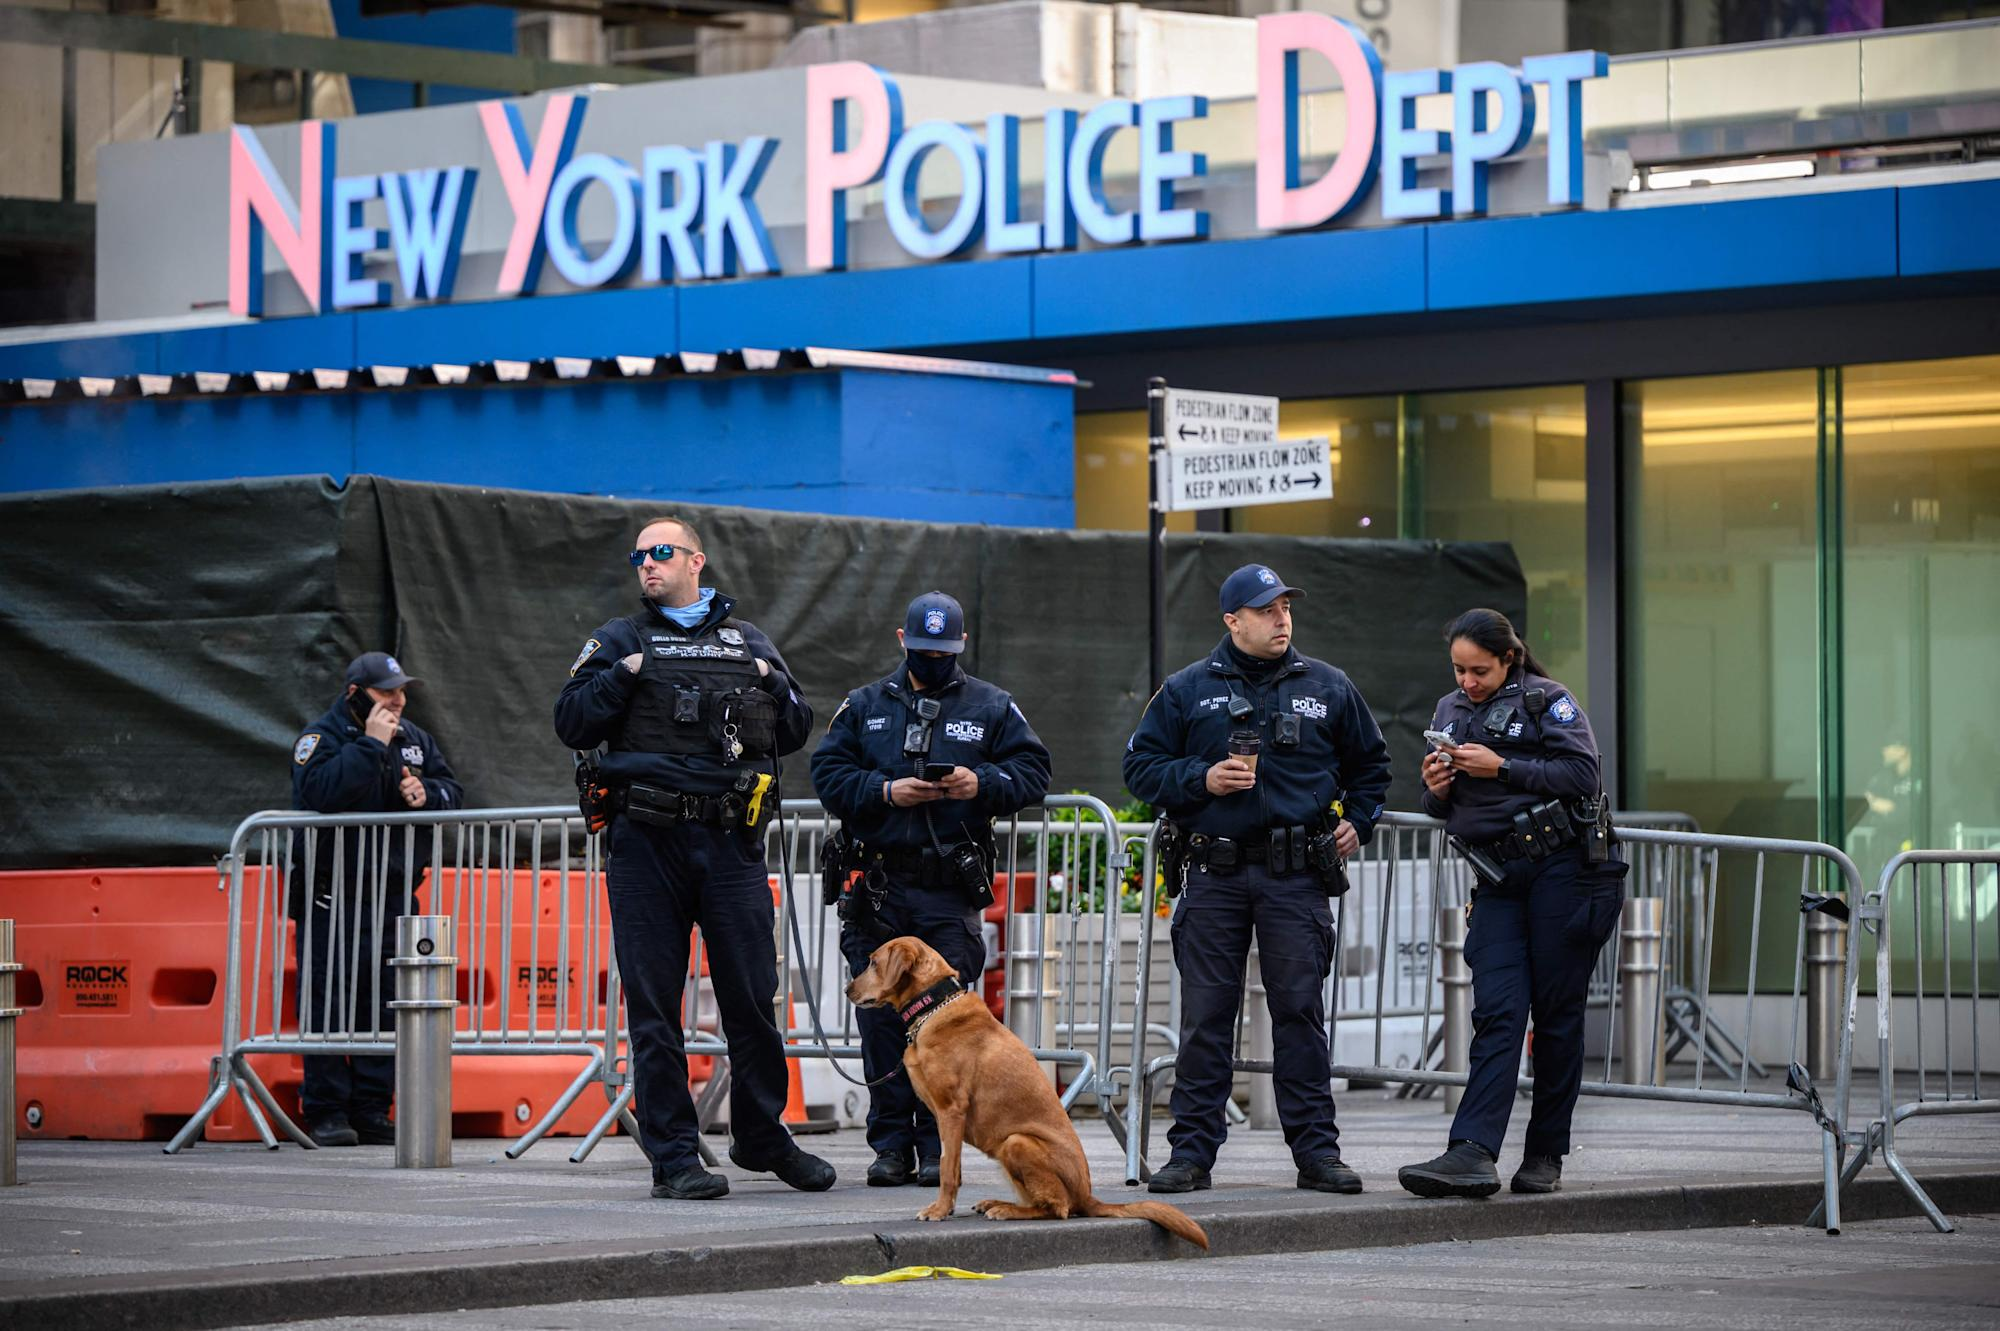 16-year-old suspect who 'shot and injured Marine' in Times Square is charged with attempted murder